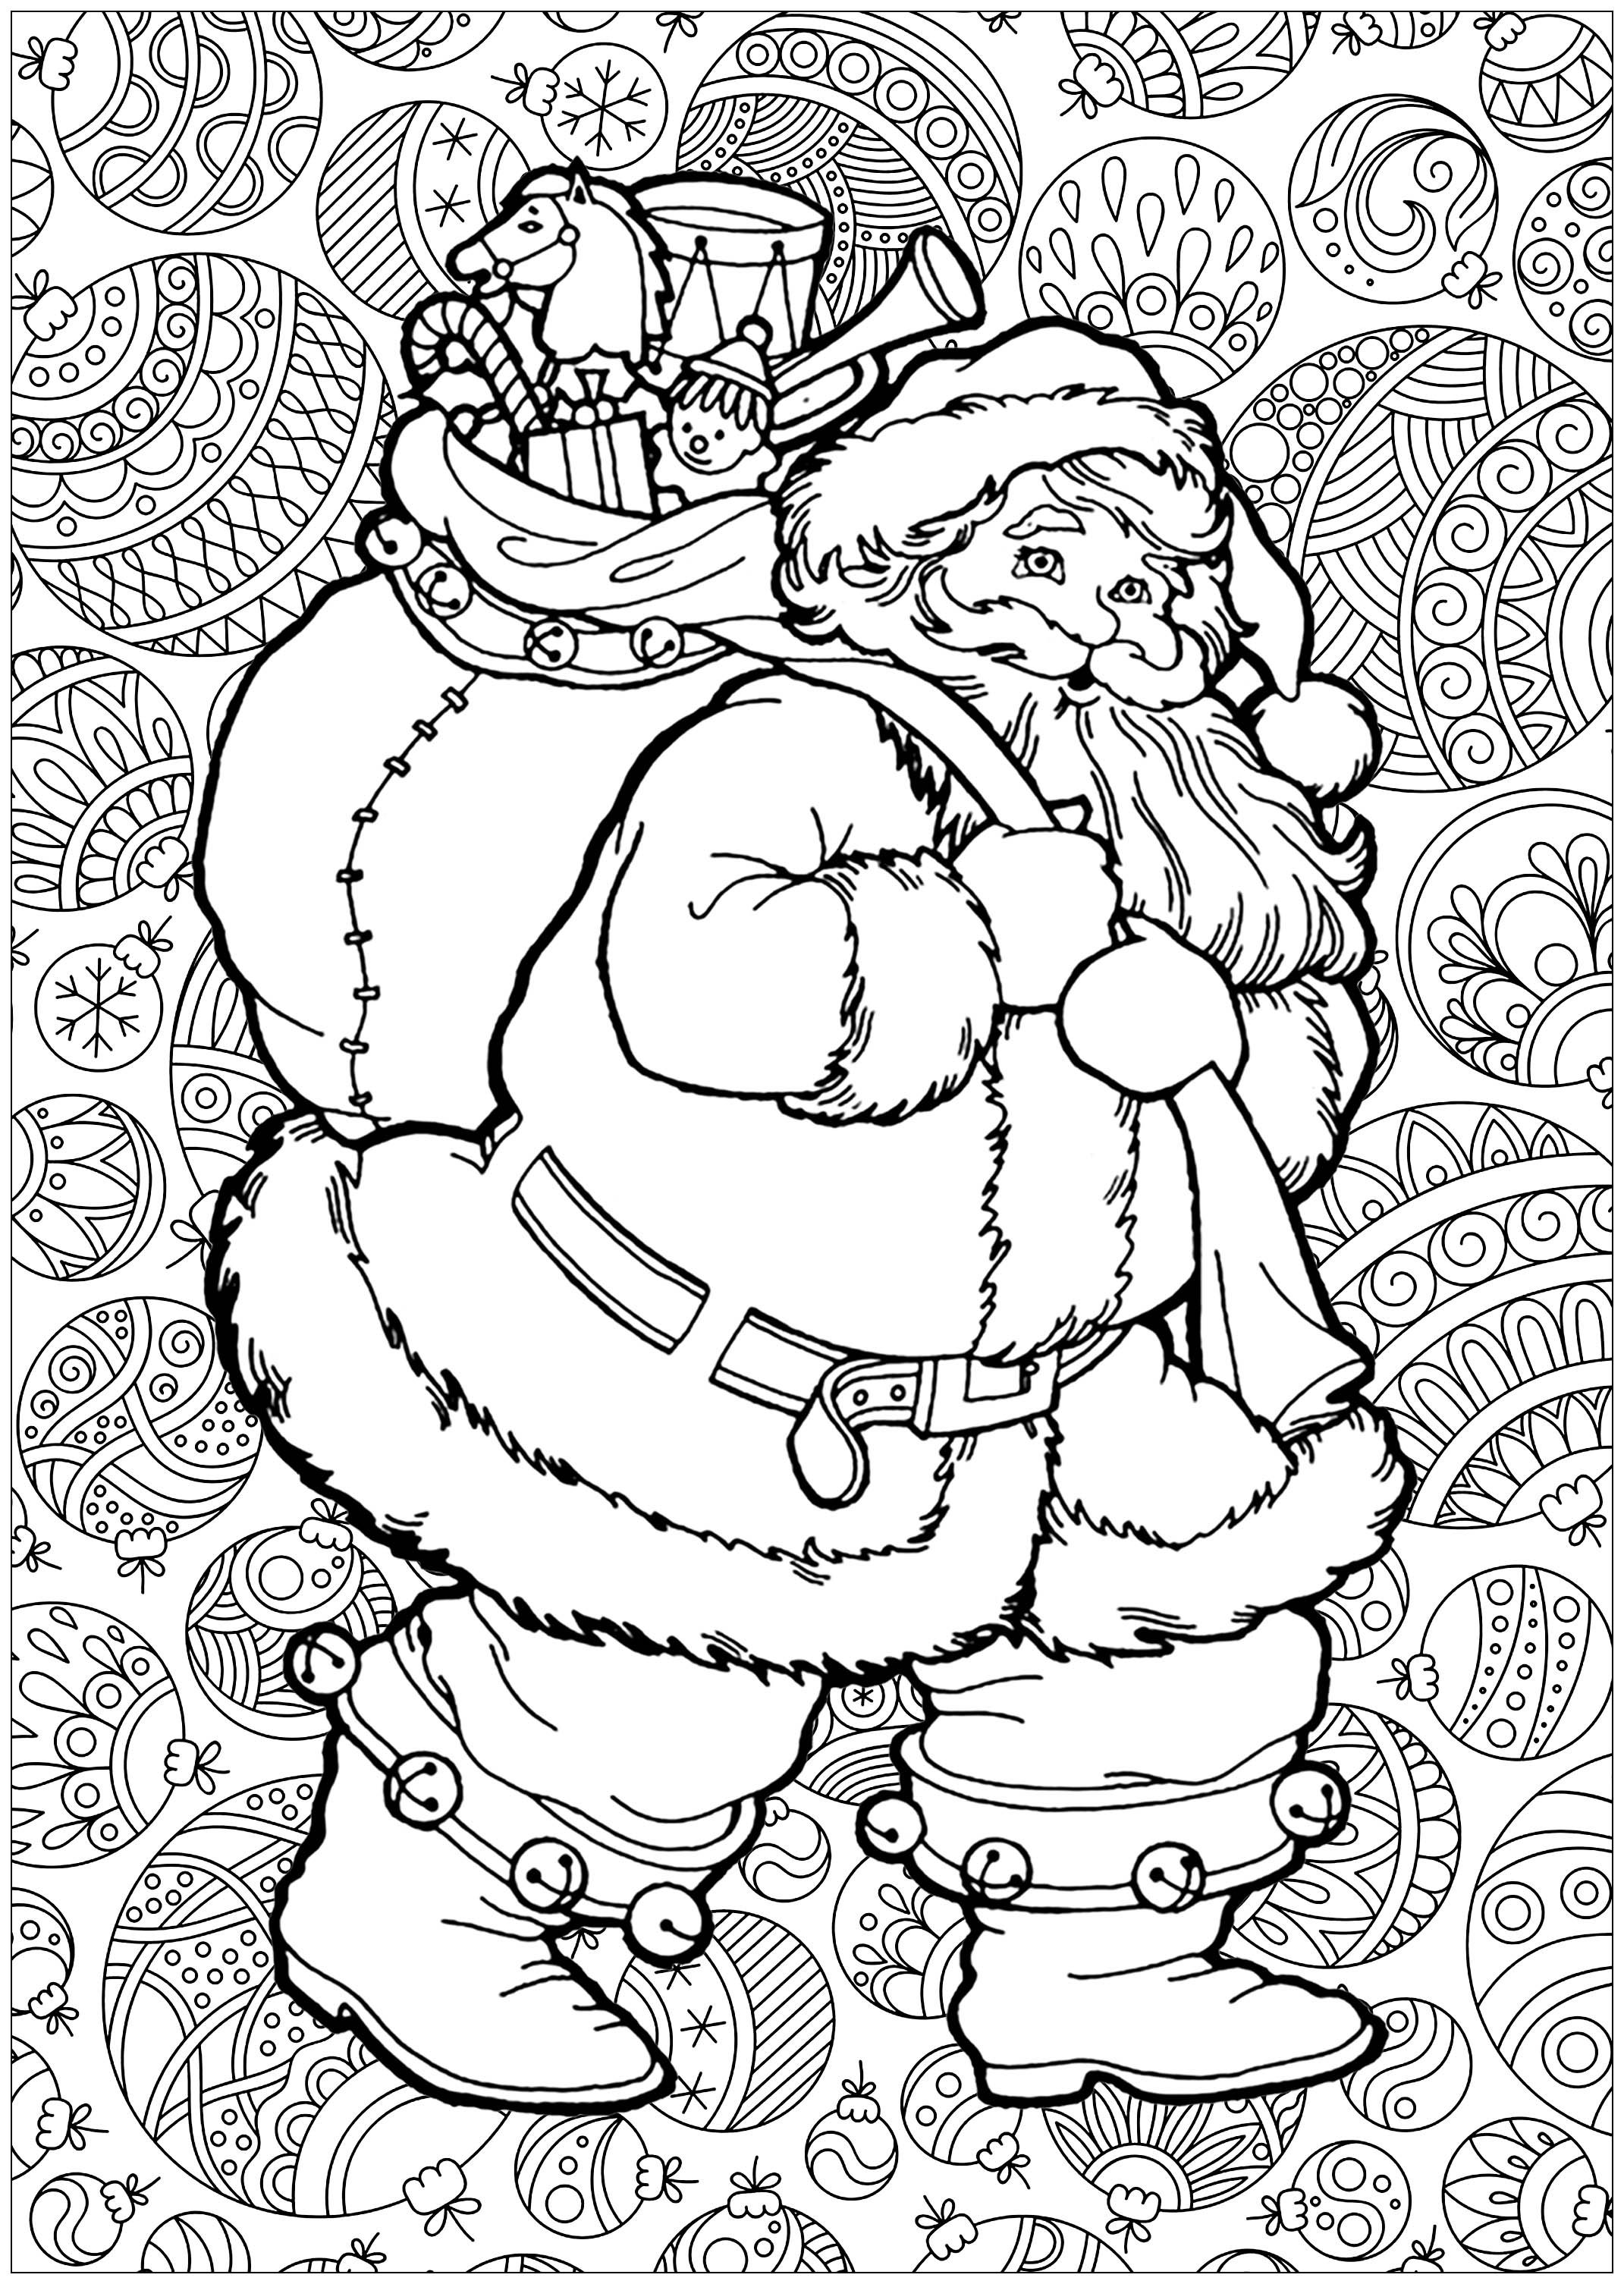 Santa Claus With Background Santa Claus With Background From The Gallery In 2020 Christmas Coloring Pages Christmas Tree Coloring Page Coloring Pages Inspirational